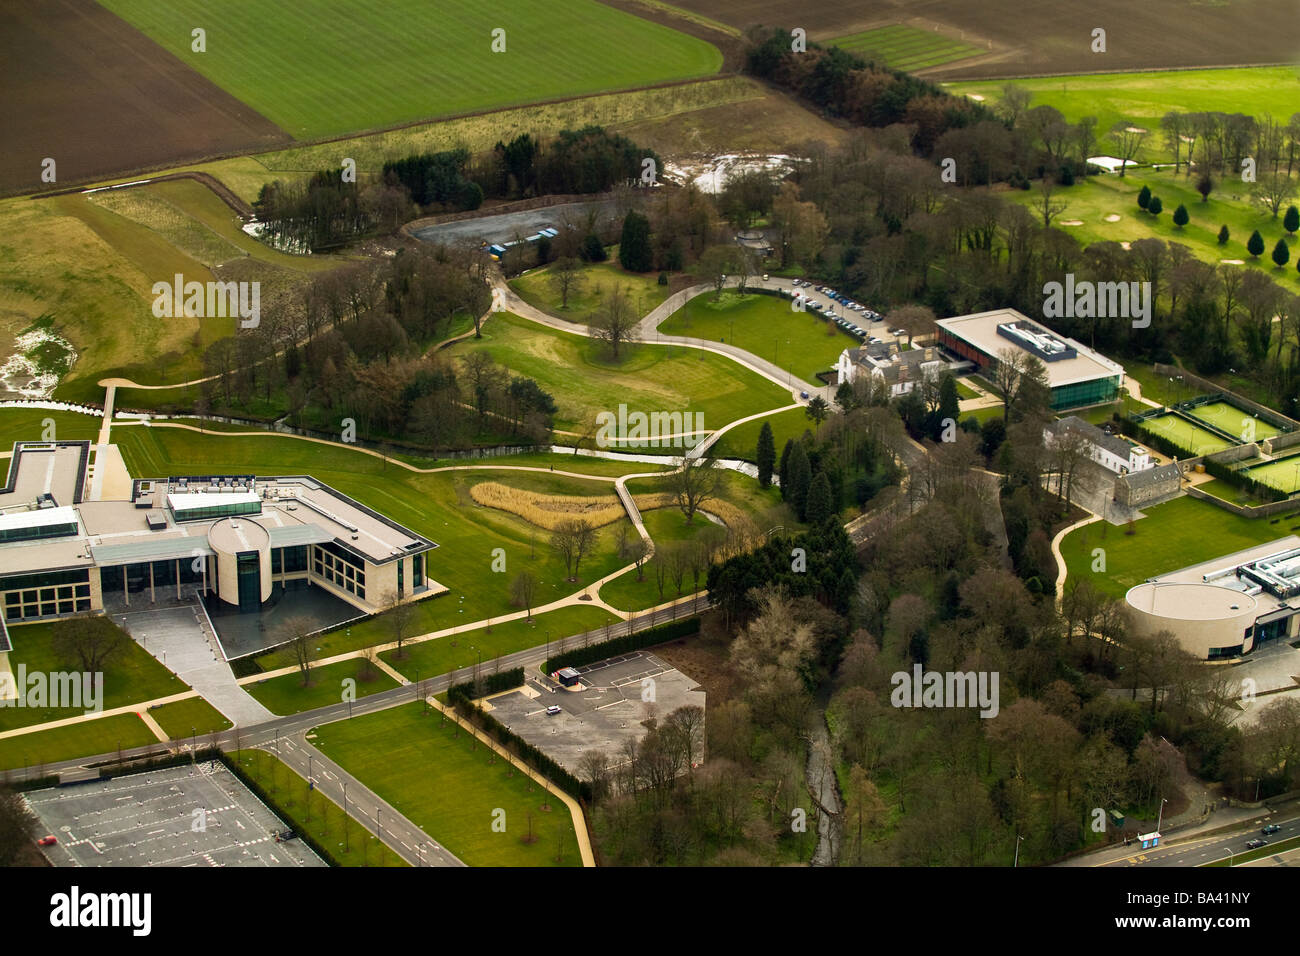 aerial photograph of rbs hq gogarburn - Stock Image